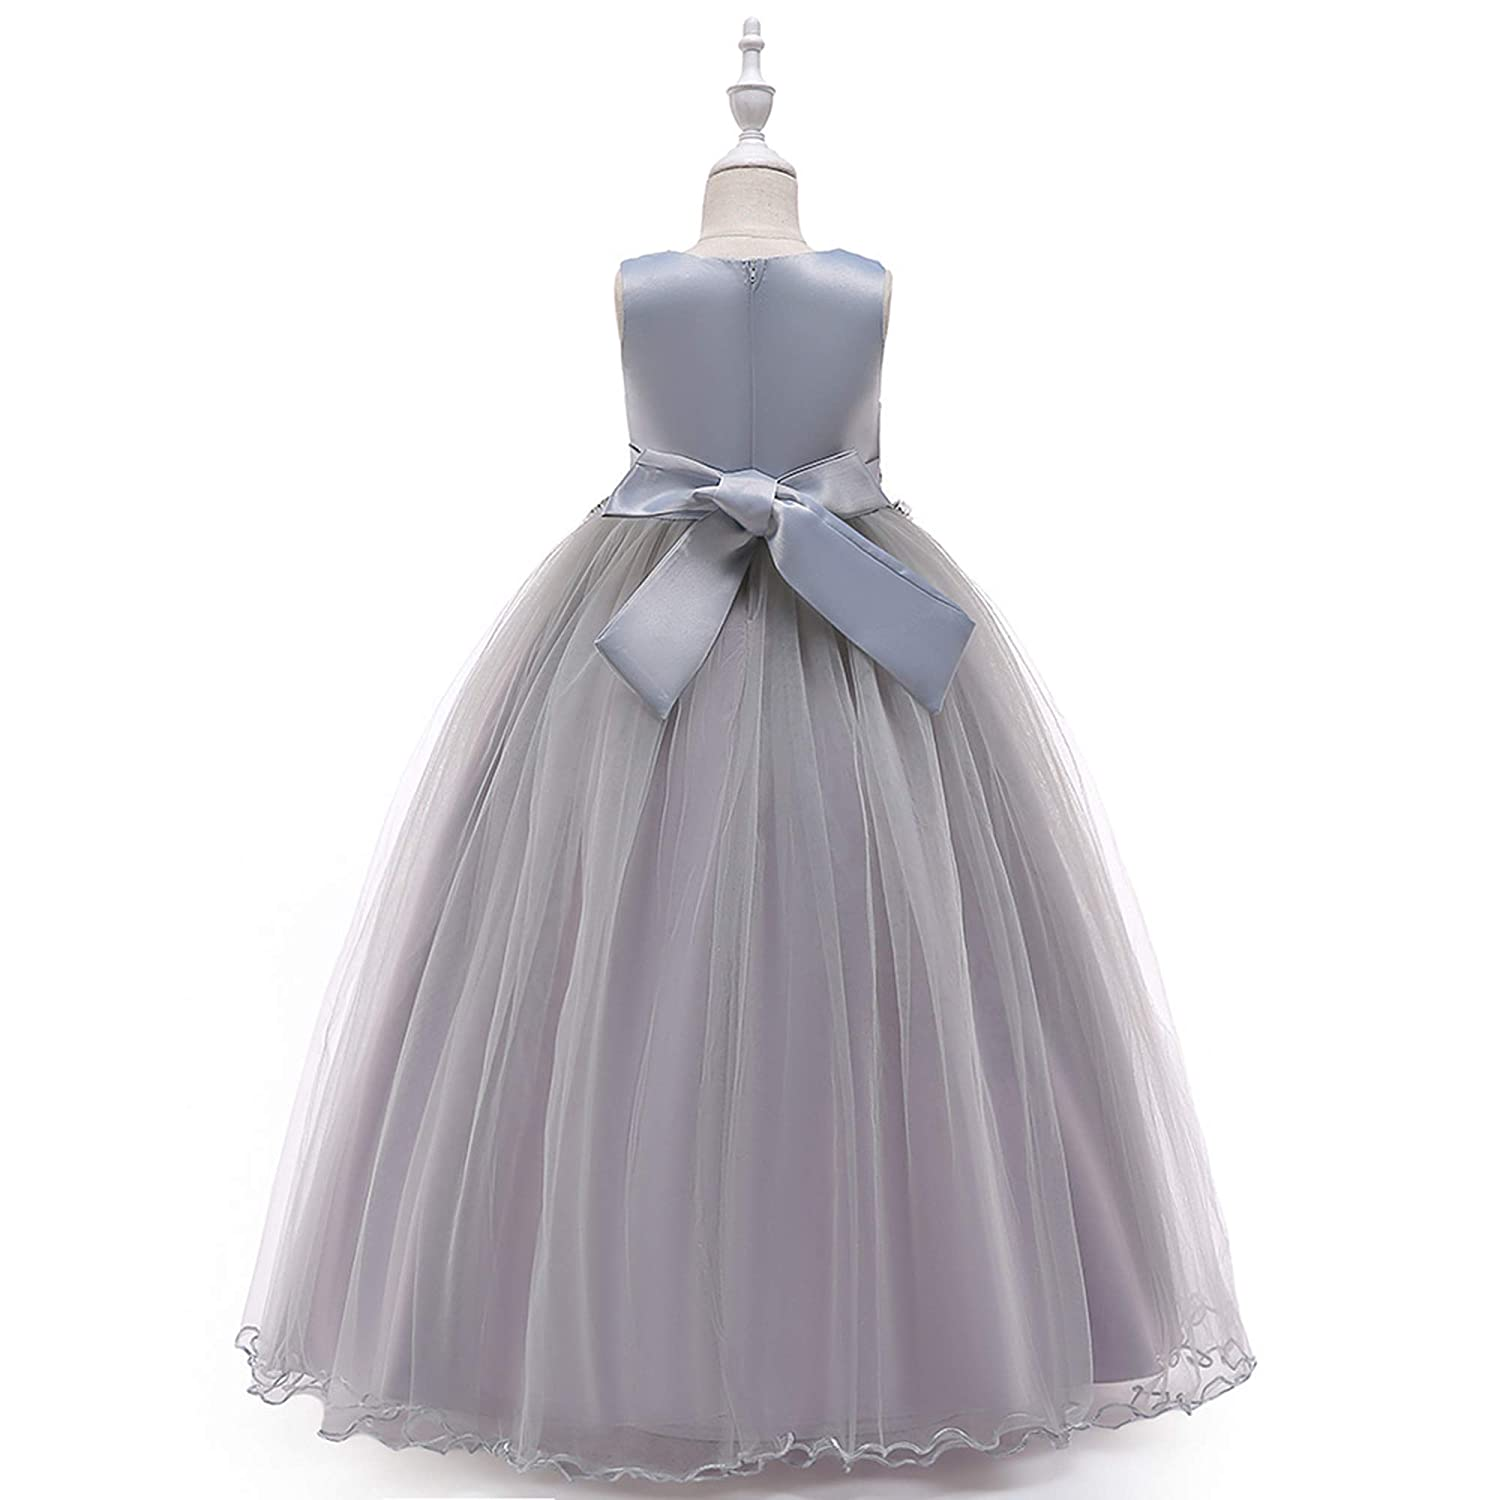 d6e8b5dcce9 Amazon.com : NOMSOCR Kids Lace Flower Costume Dress Girl Pageant Christmas  Party Princess Dresses (6-7 Years, Grey) : Garden & Outdoor